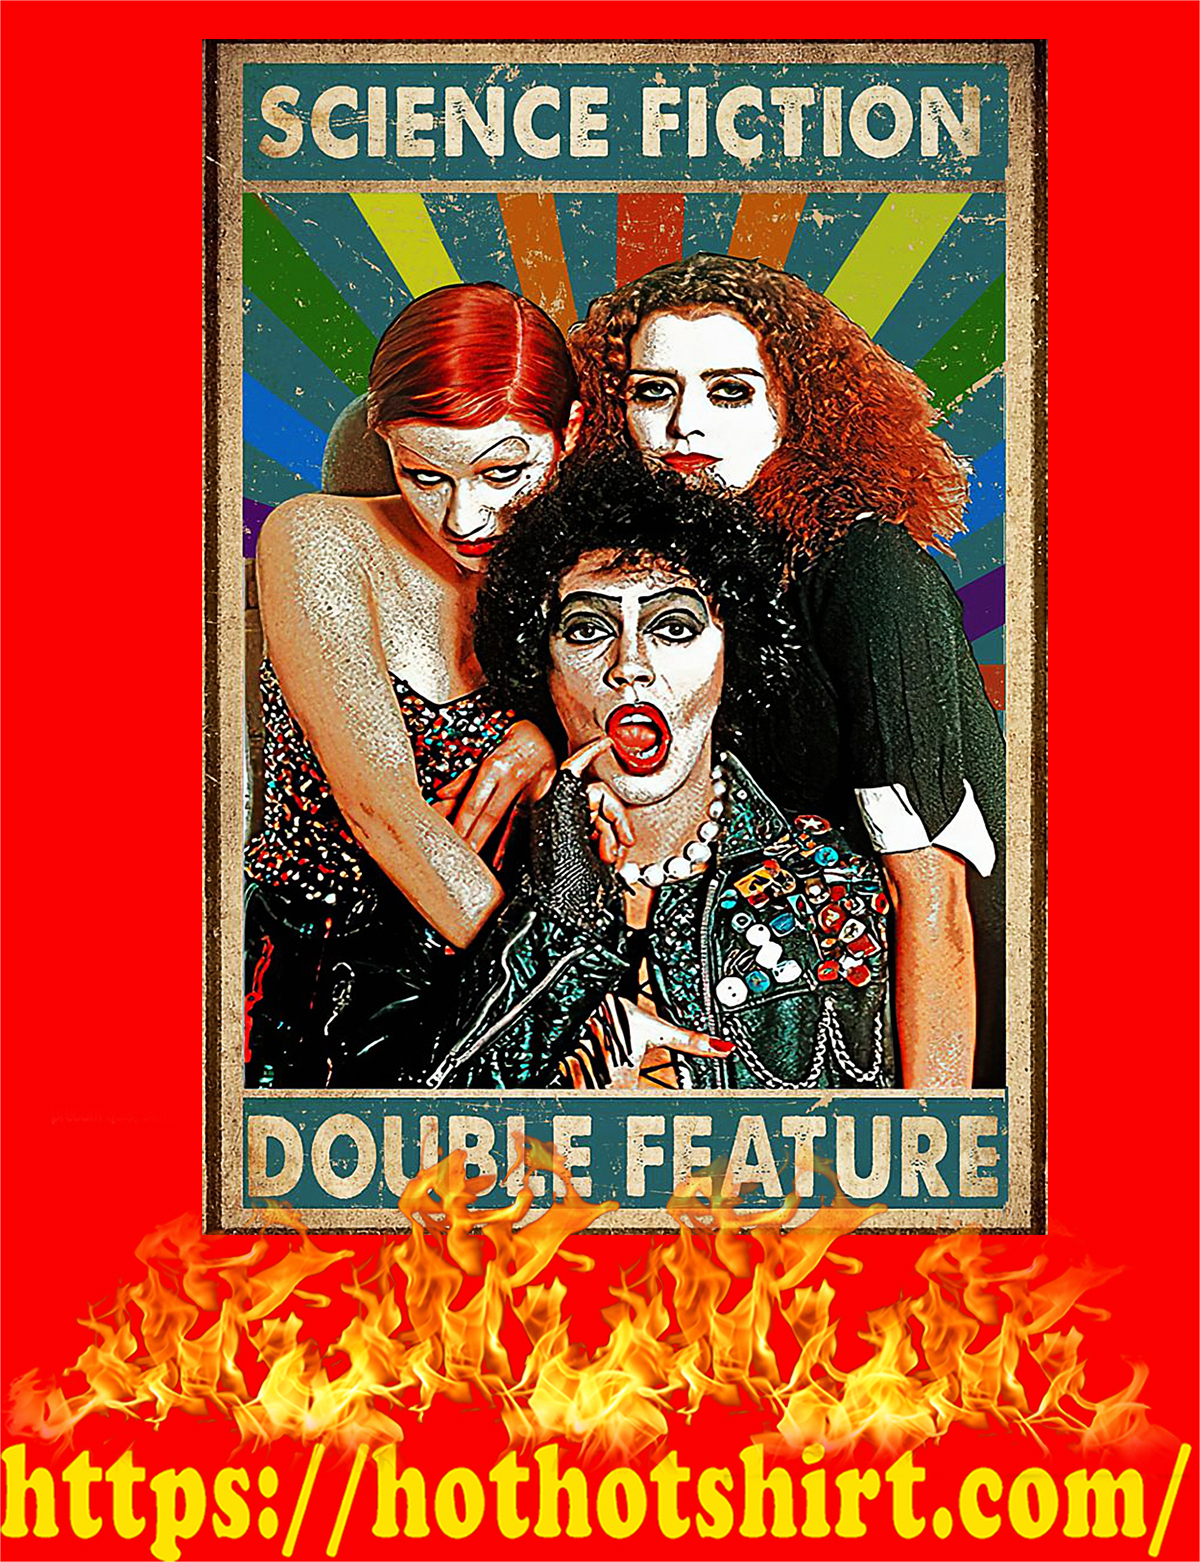 Rocky horror science fiction double feature poster - A2